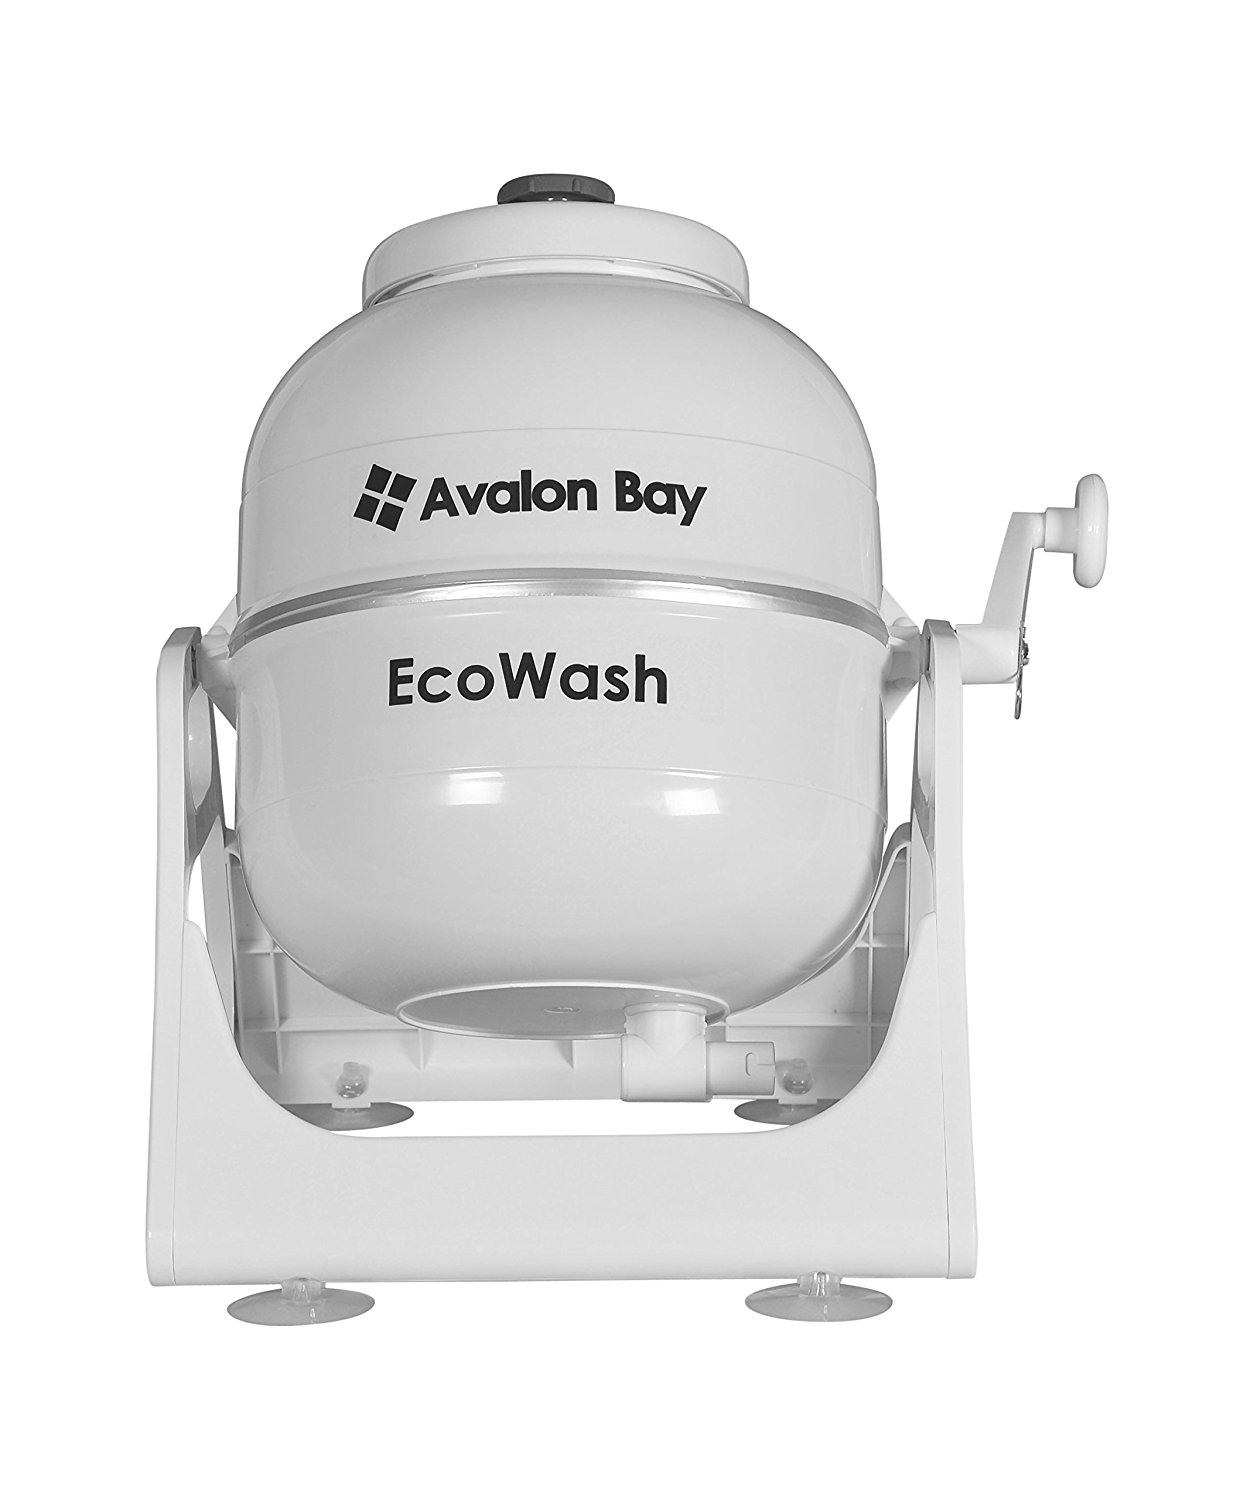 Avalon Bay Ecowash Washing Machine